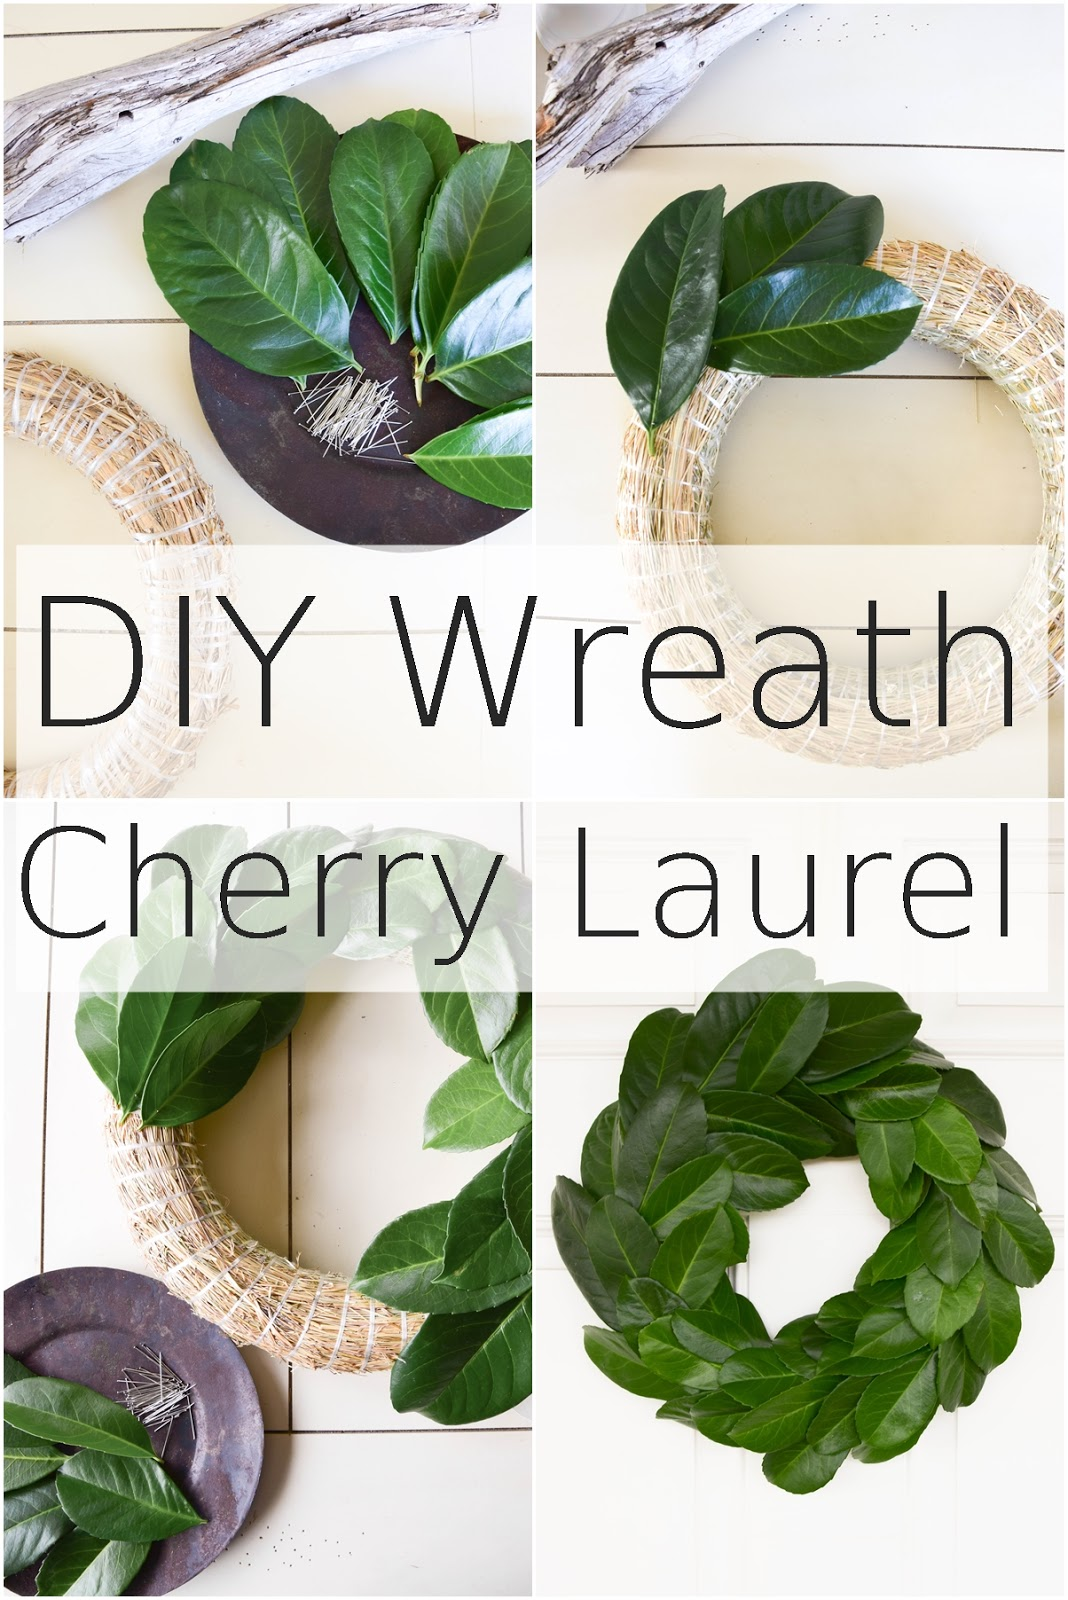 DIY wreath with cherry laurel